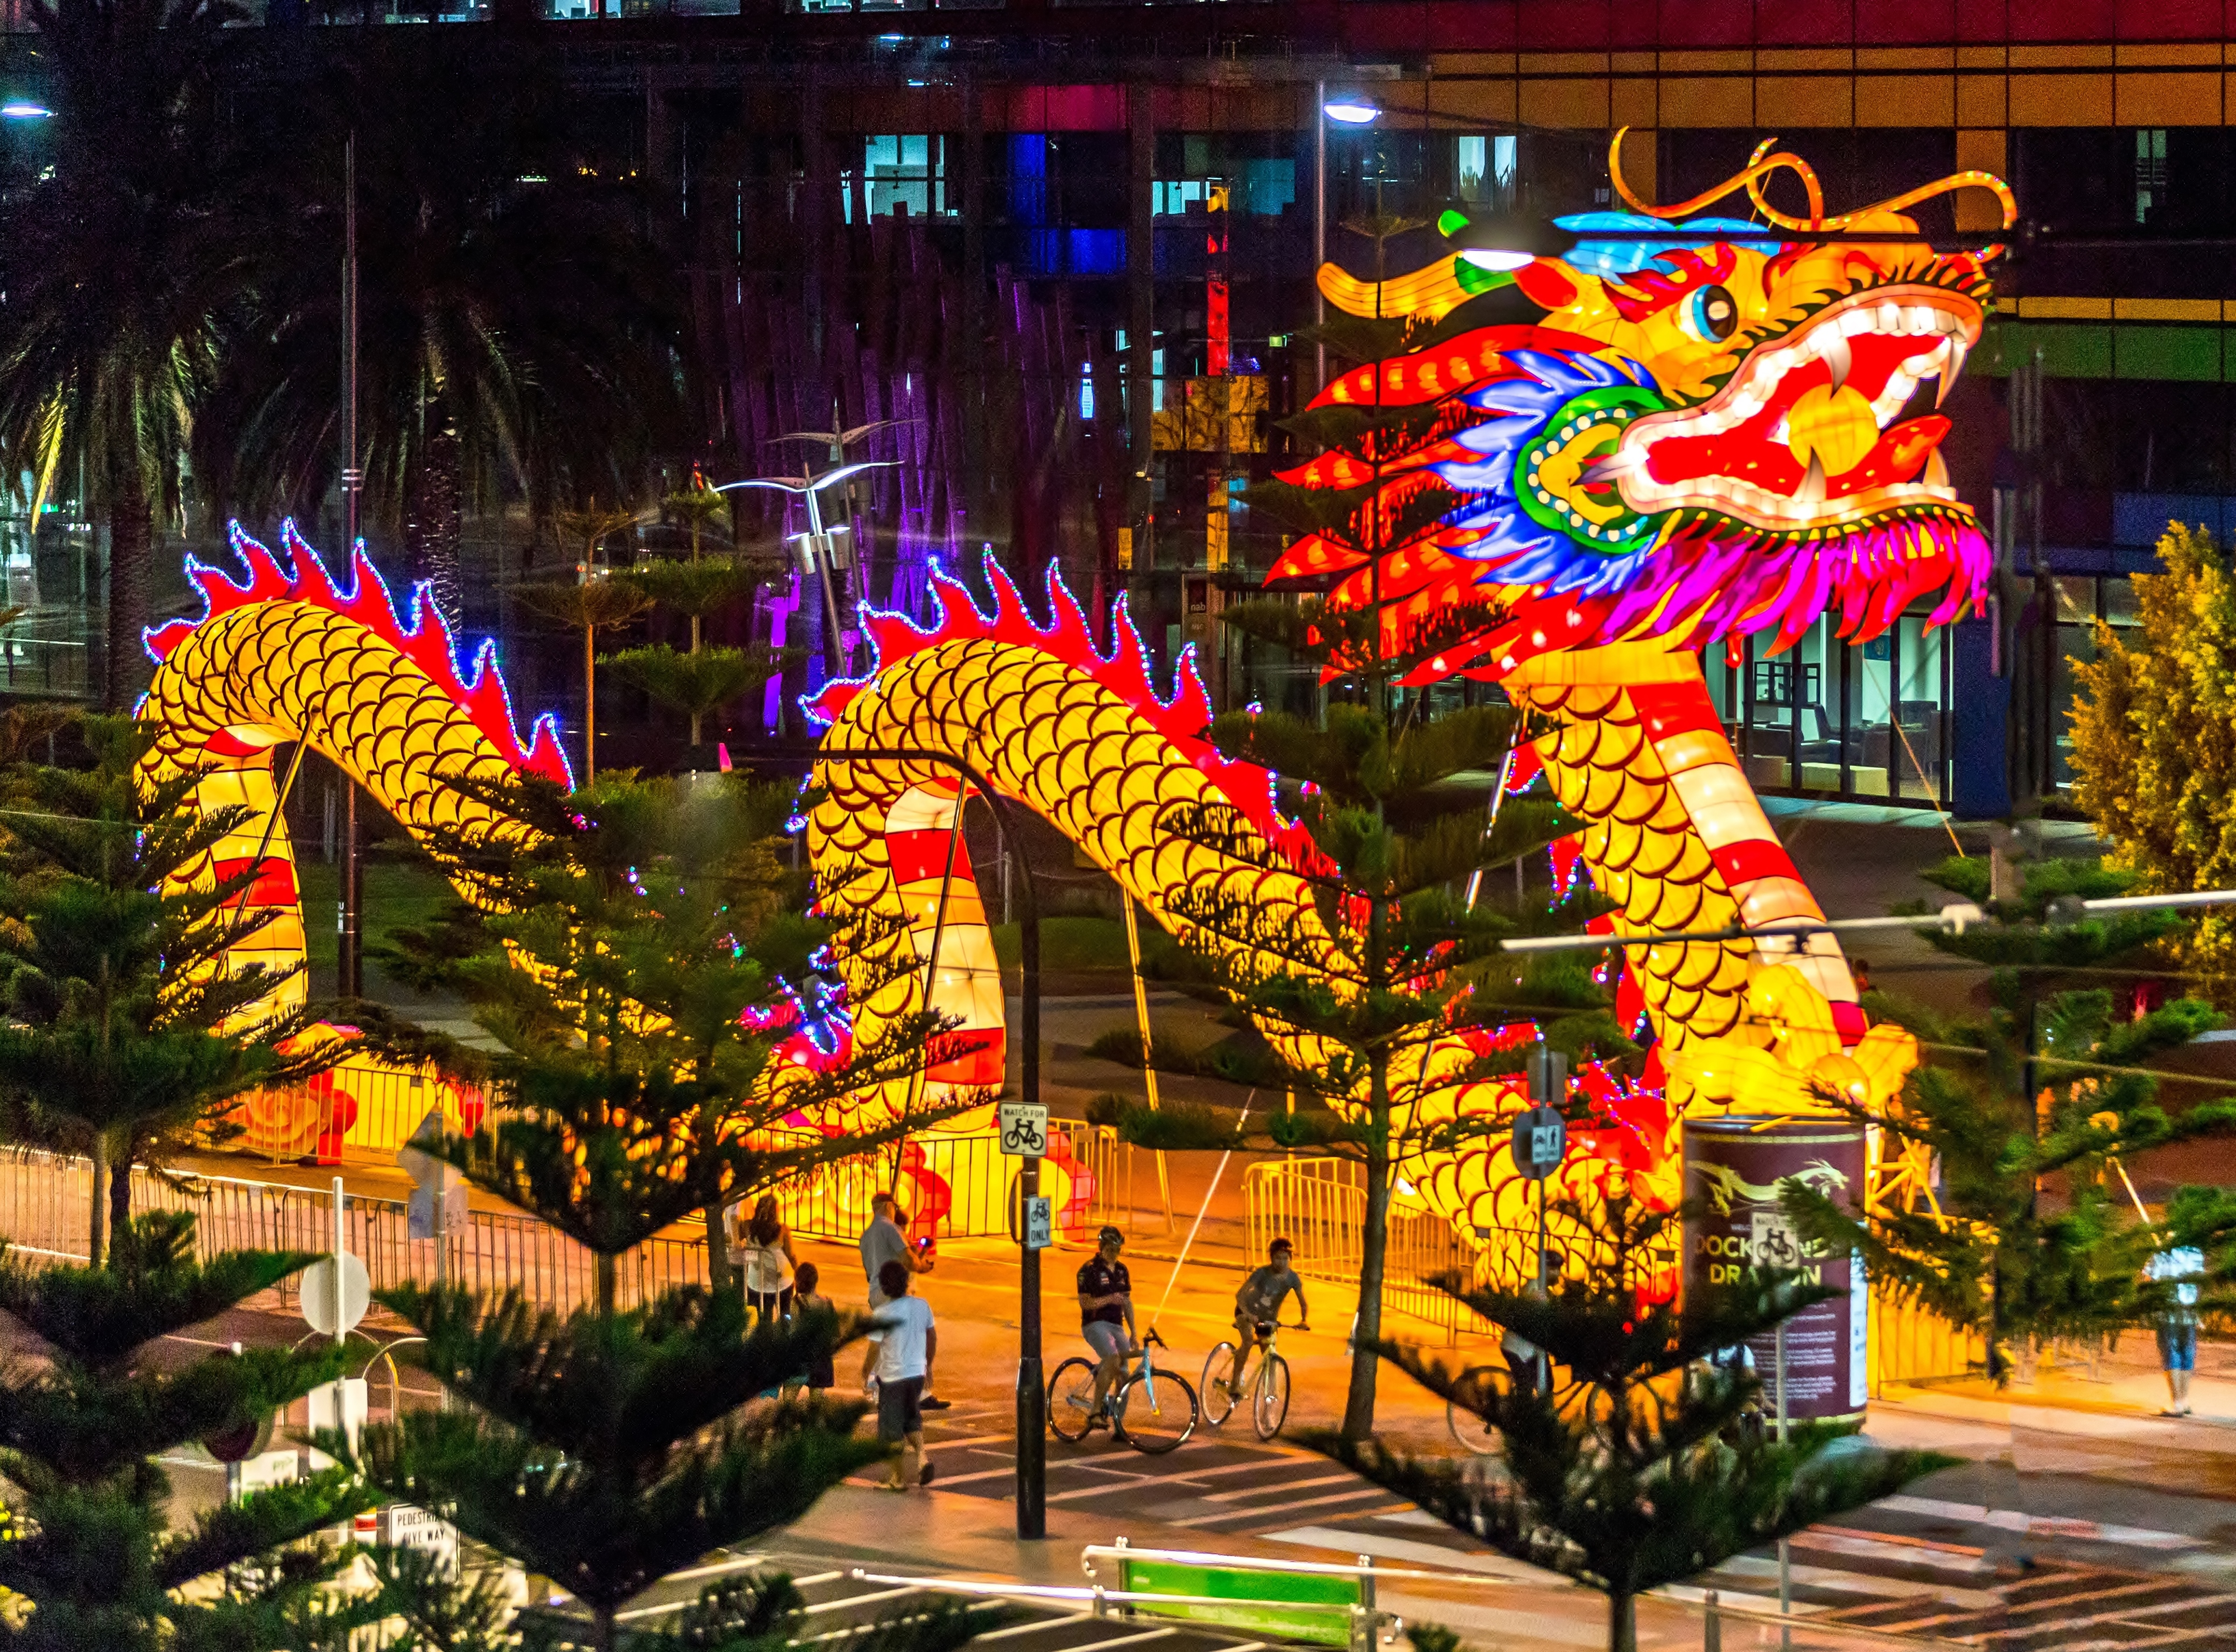 filechinese new year dragon 2014jpg - What Is Chinese New Year